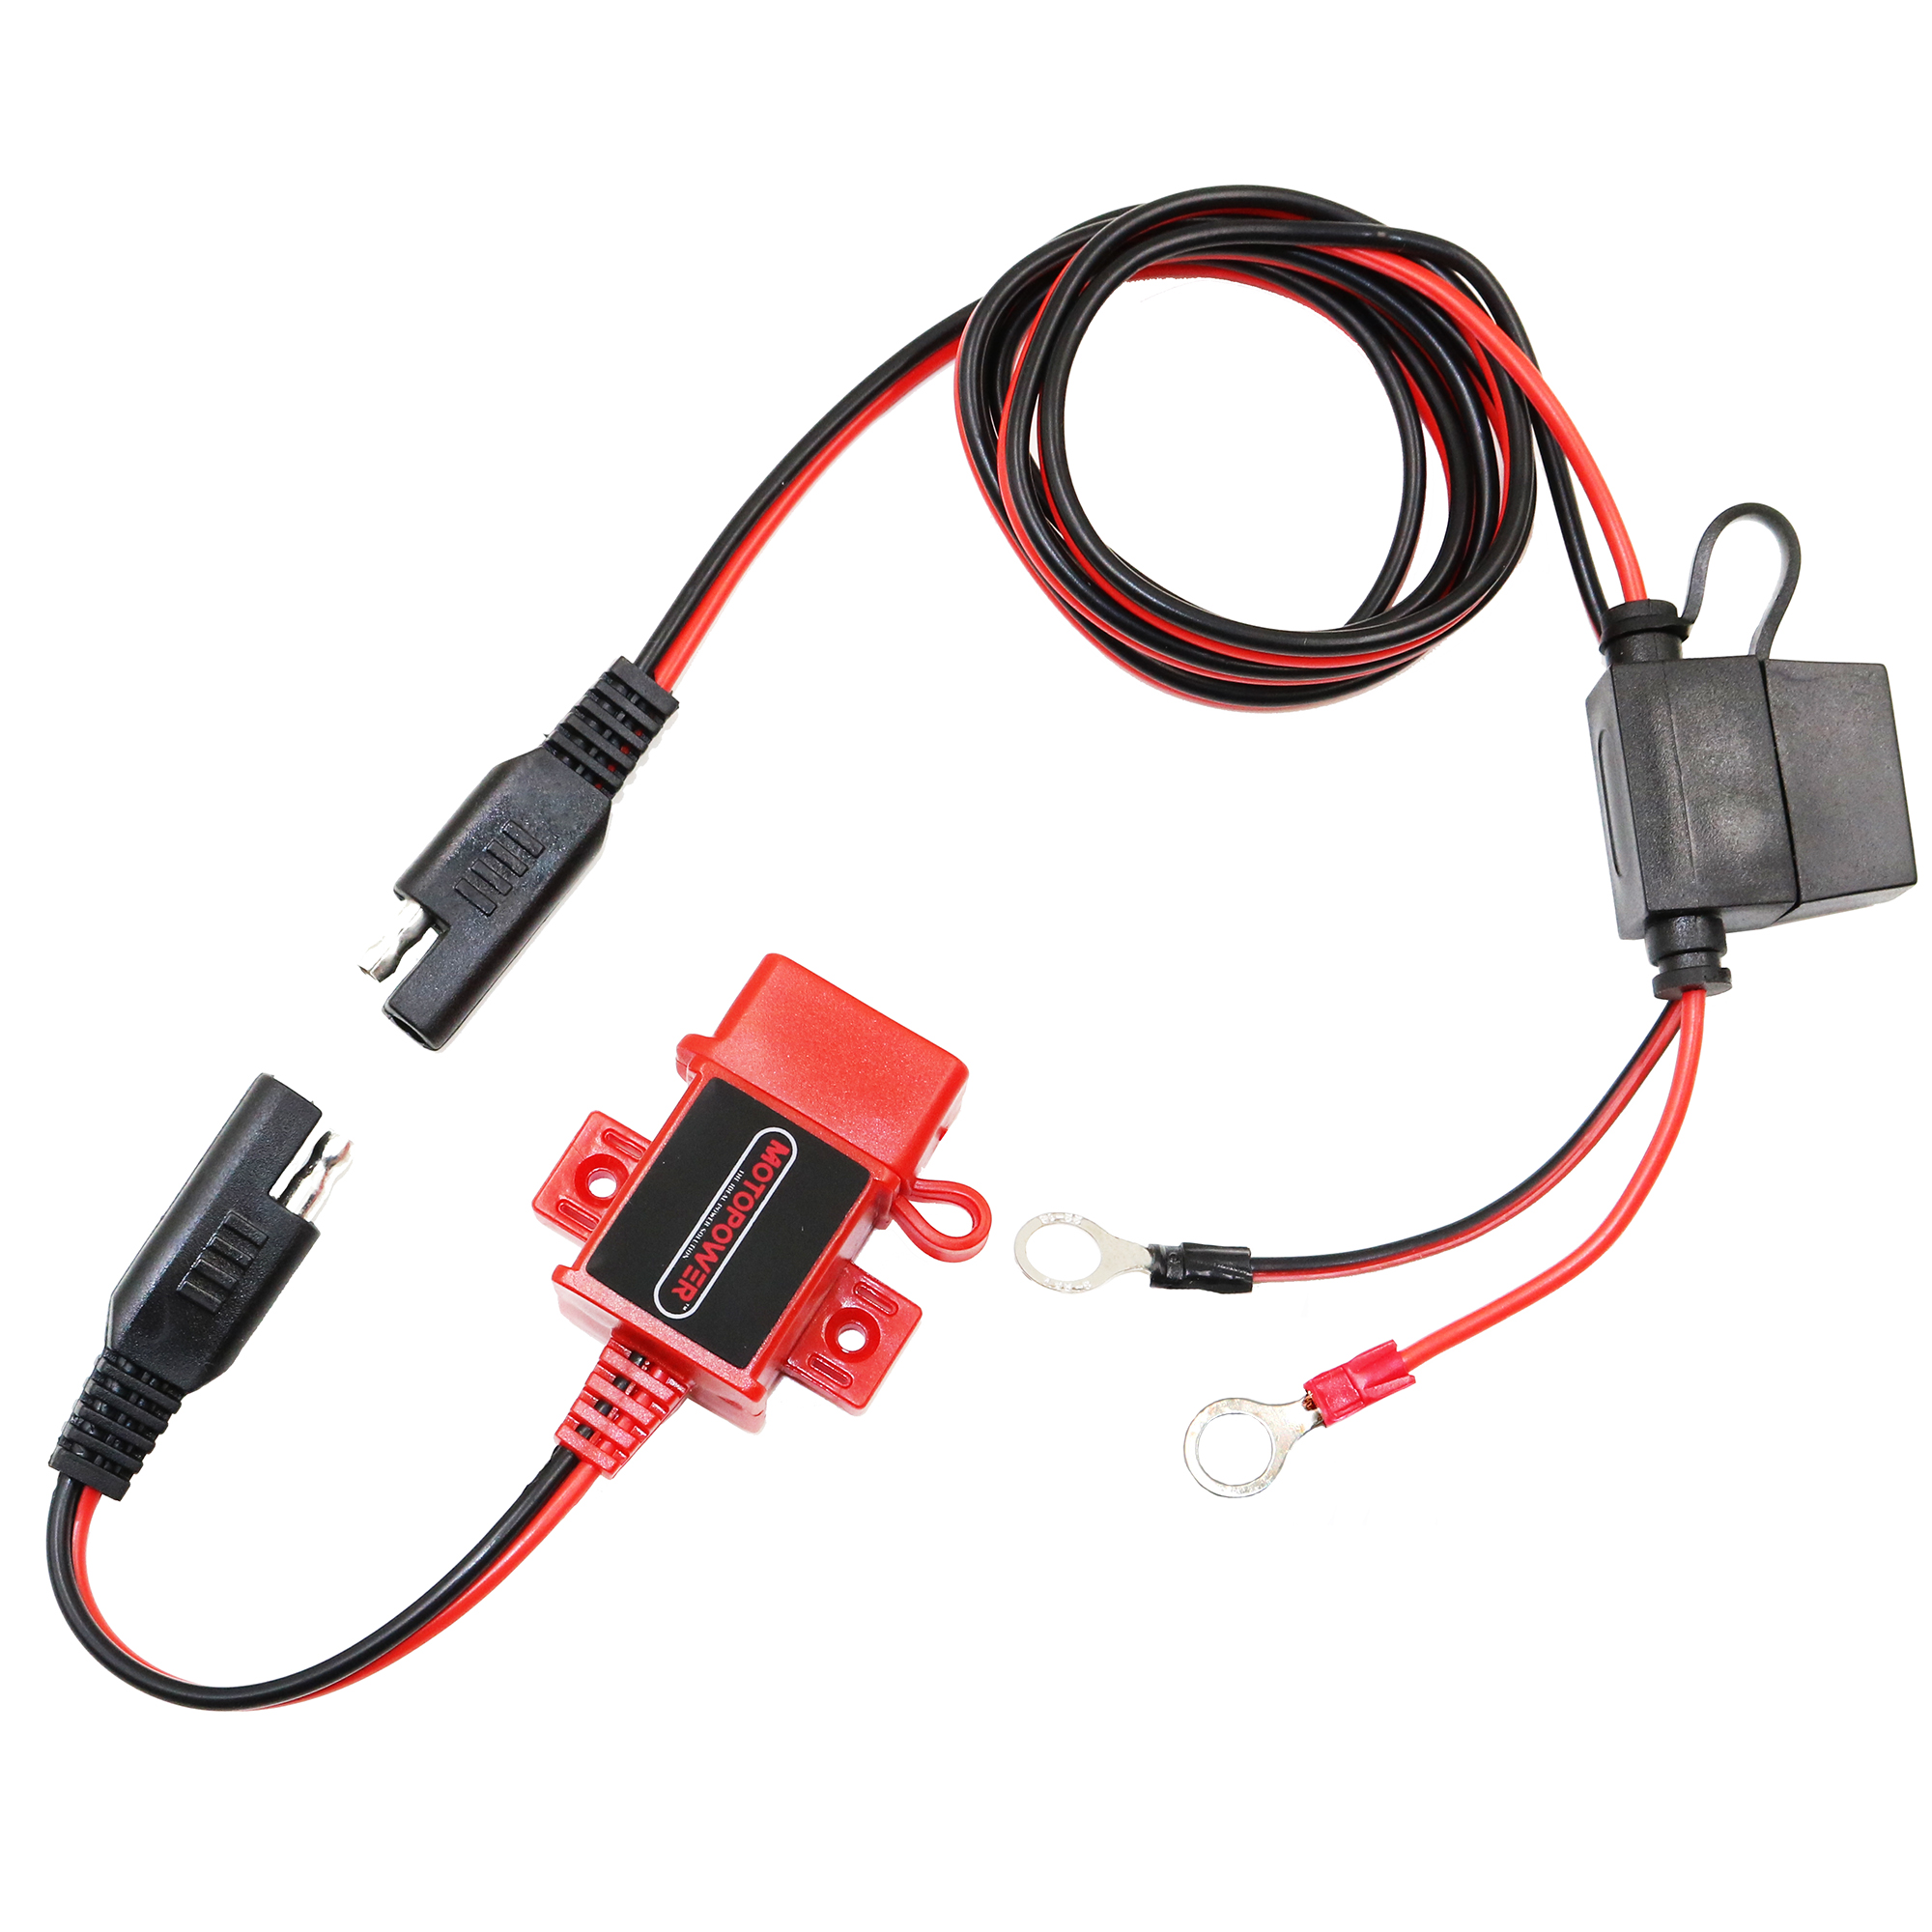 MOTOPOWER MP0609AR 3.1Amp Motorcycle USB Charger Kit SAE to USB Adapter Red